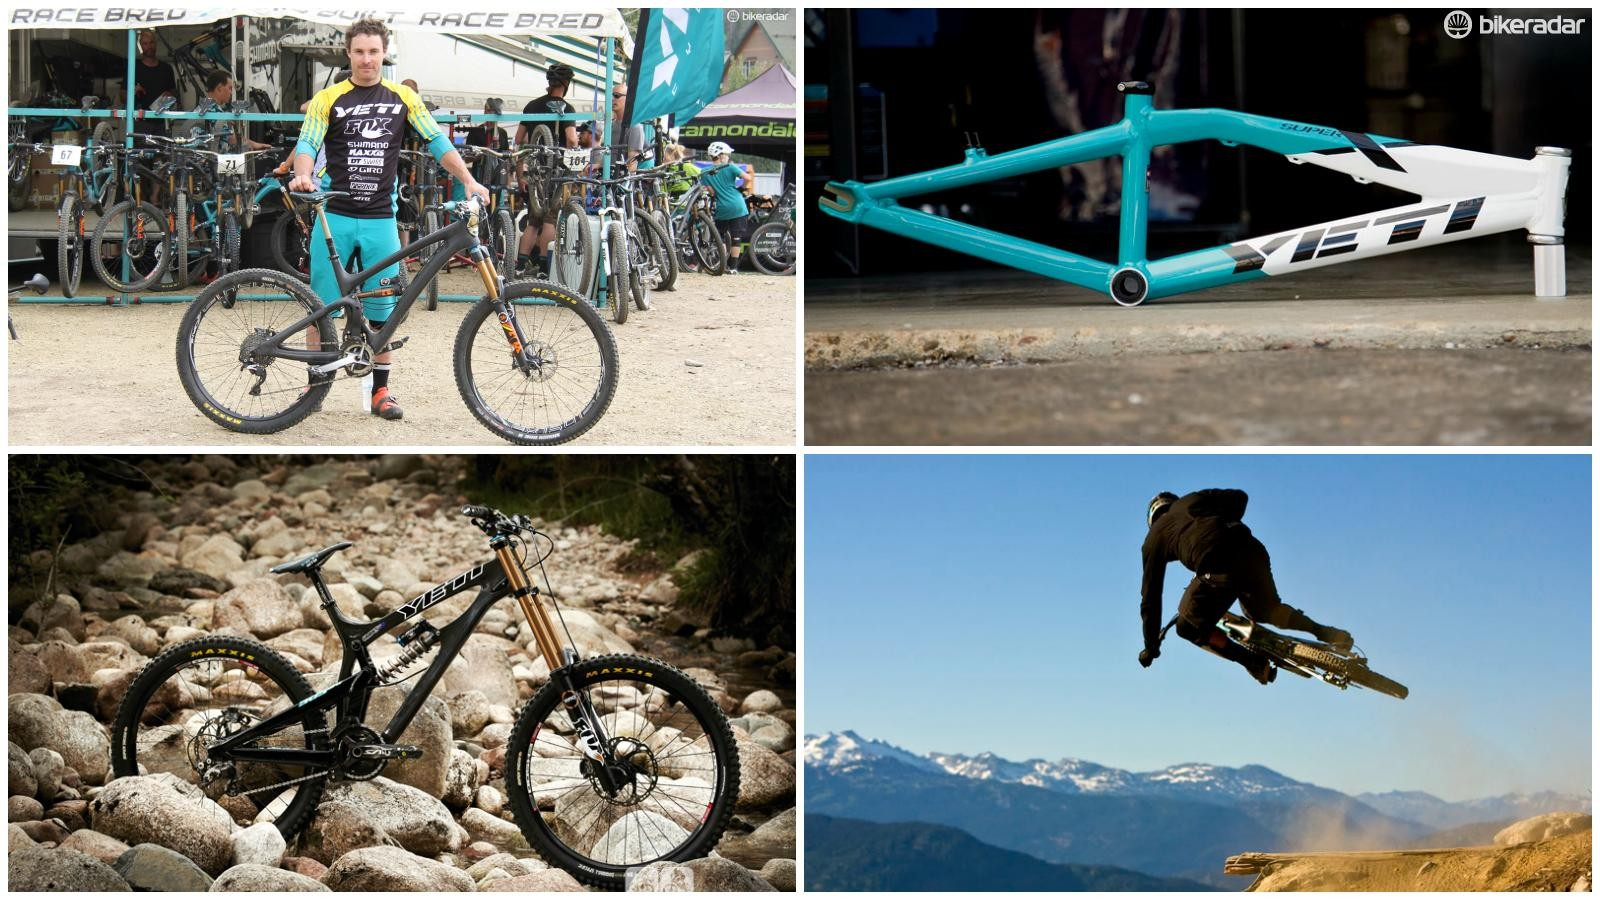 Yeti Cycles and Jared Graves are parting ways after 12 years